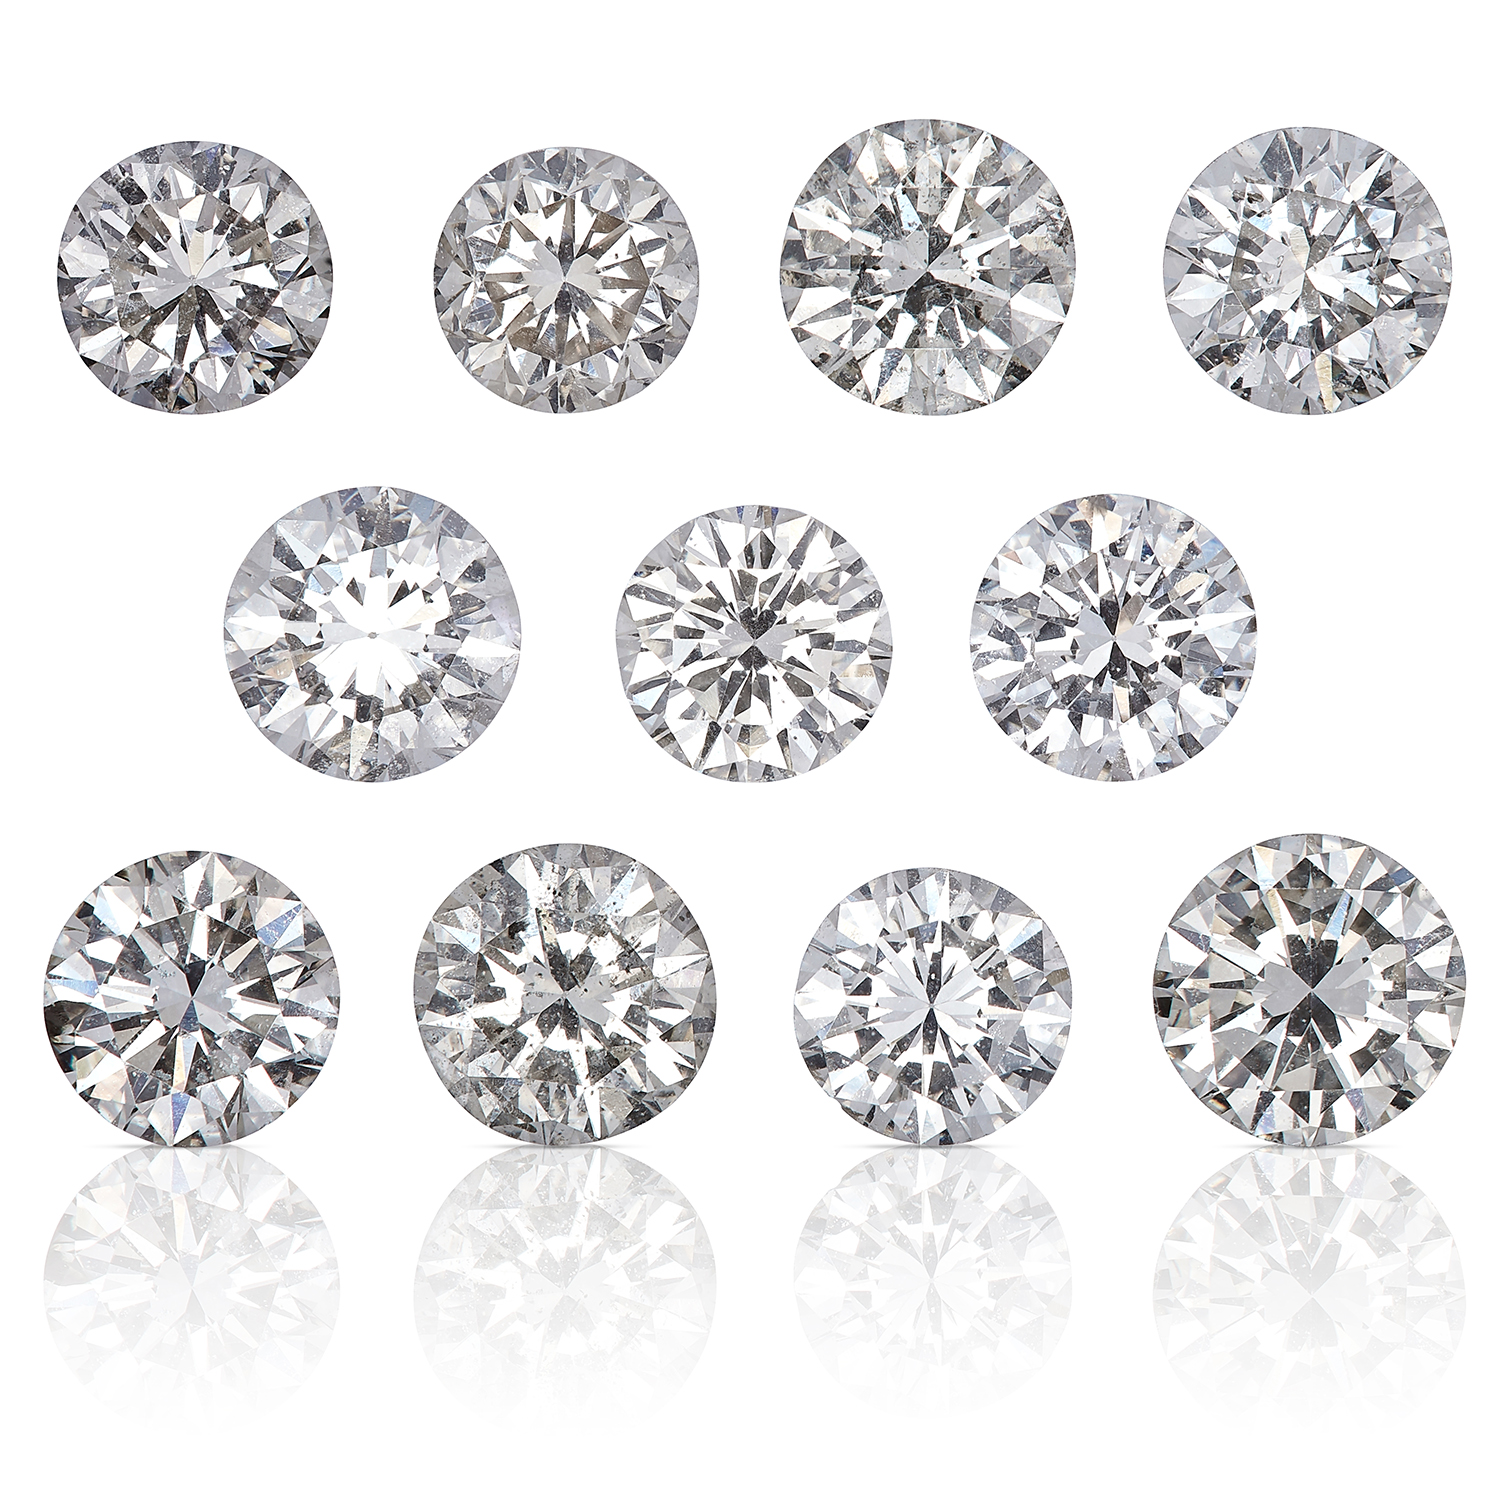 ELEVEN ROUND CUT MODERN BRILLIANT DIAMONDS, TOTALLING 3.75cts, UNMOUNTED.